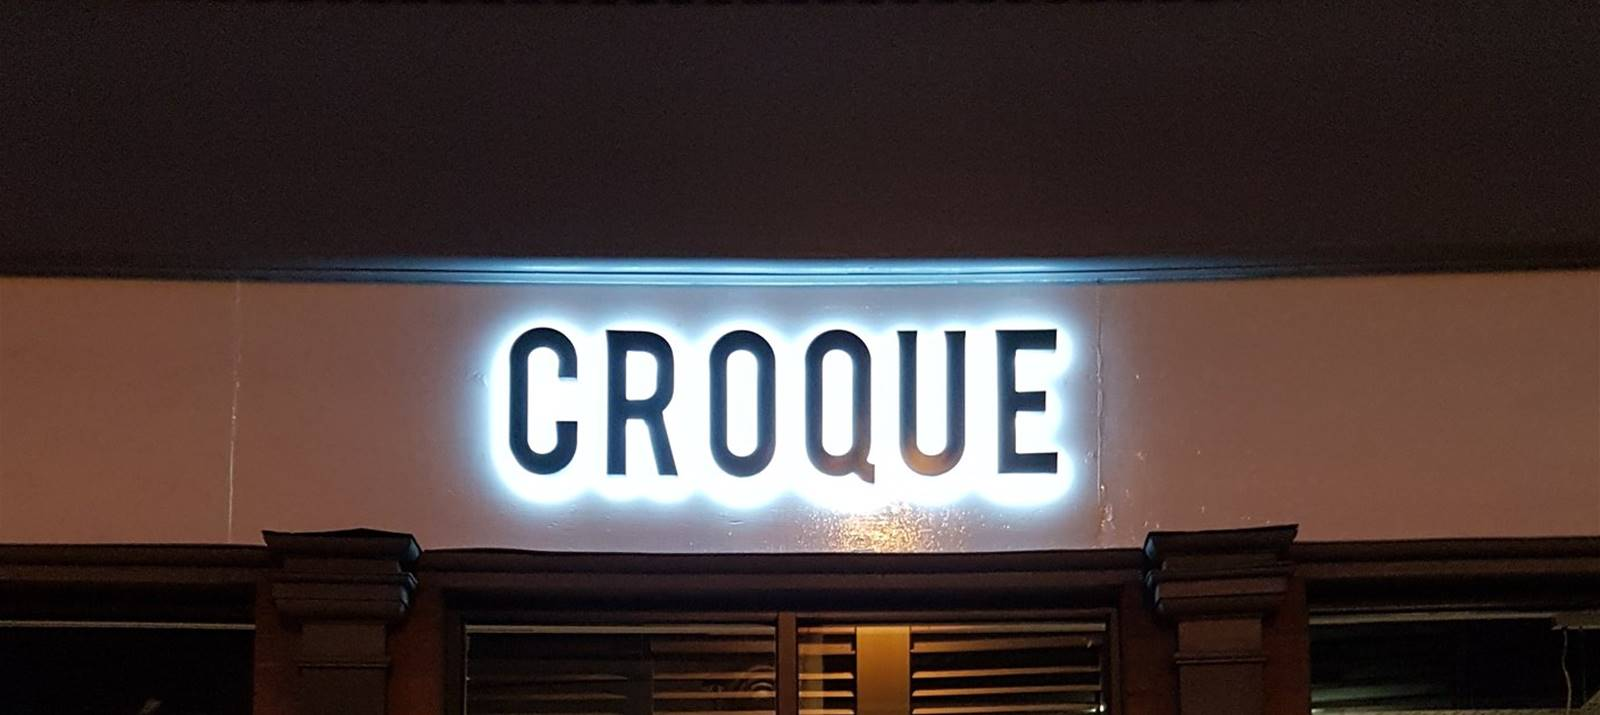 Graphics & Signage for Croque Monsieur York